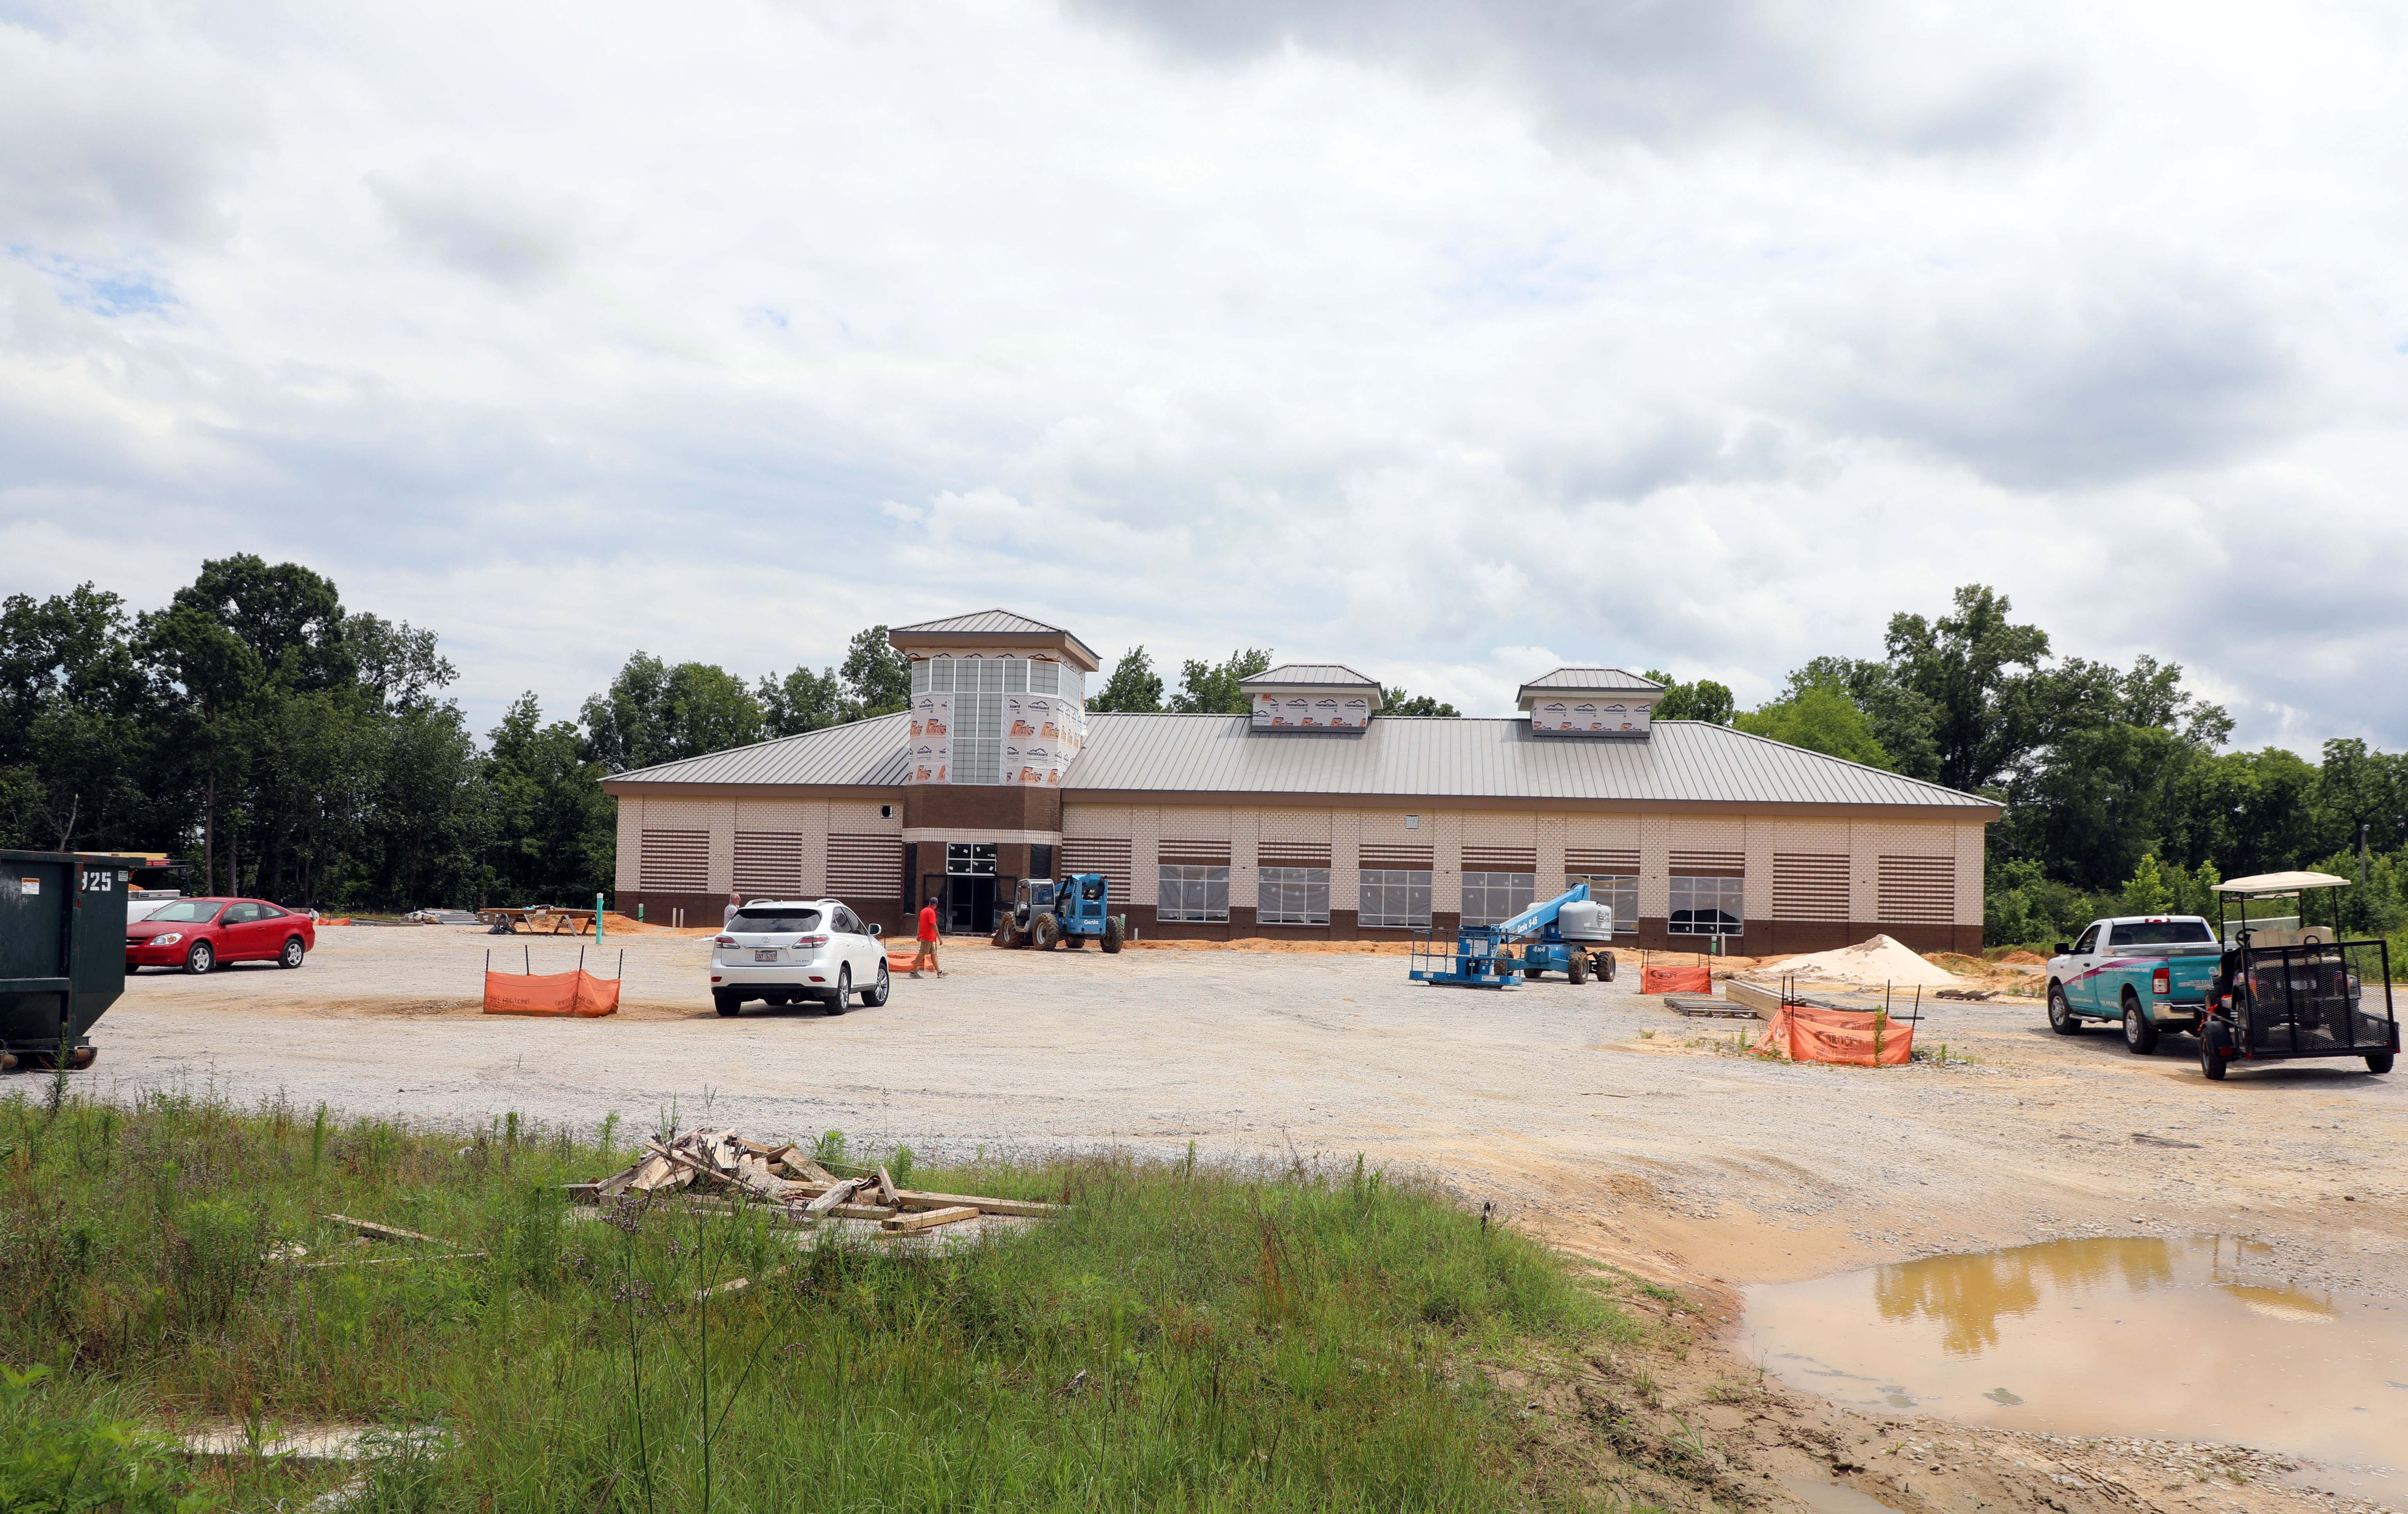 Photo Gallery: New Chesterfield Building Construction (June 22, 2020)